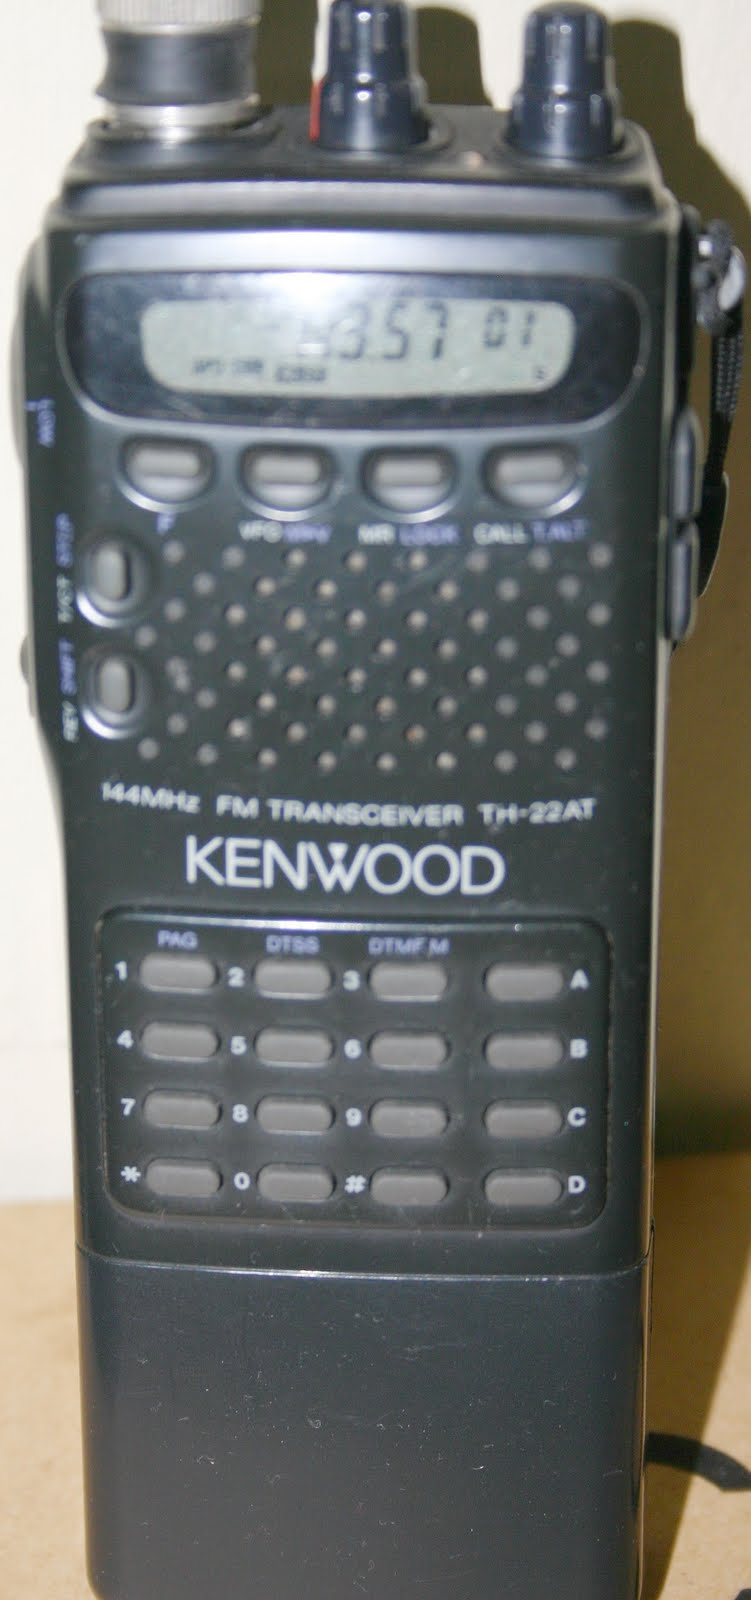 Kenwood radio amateur ht